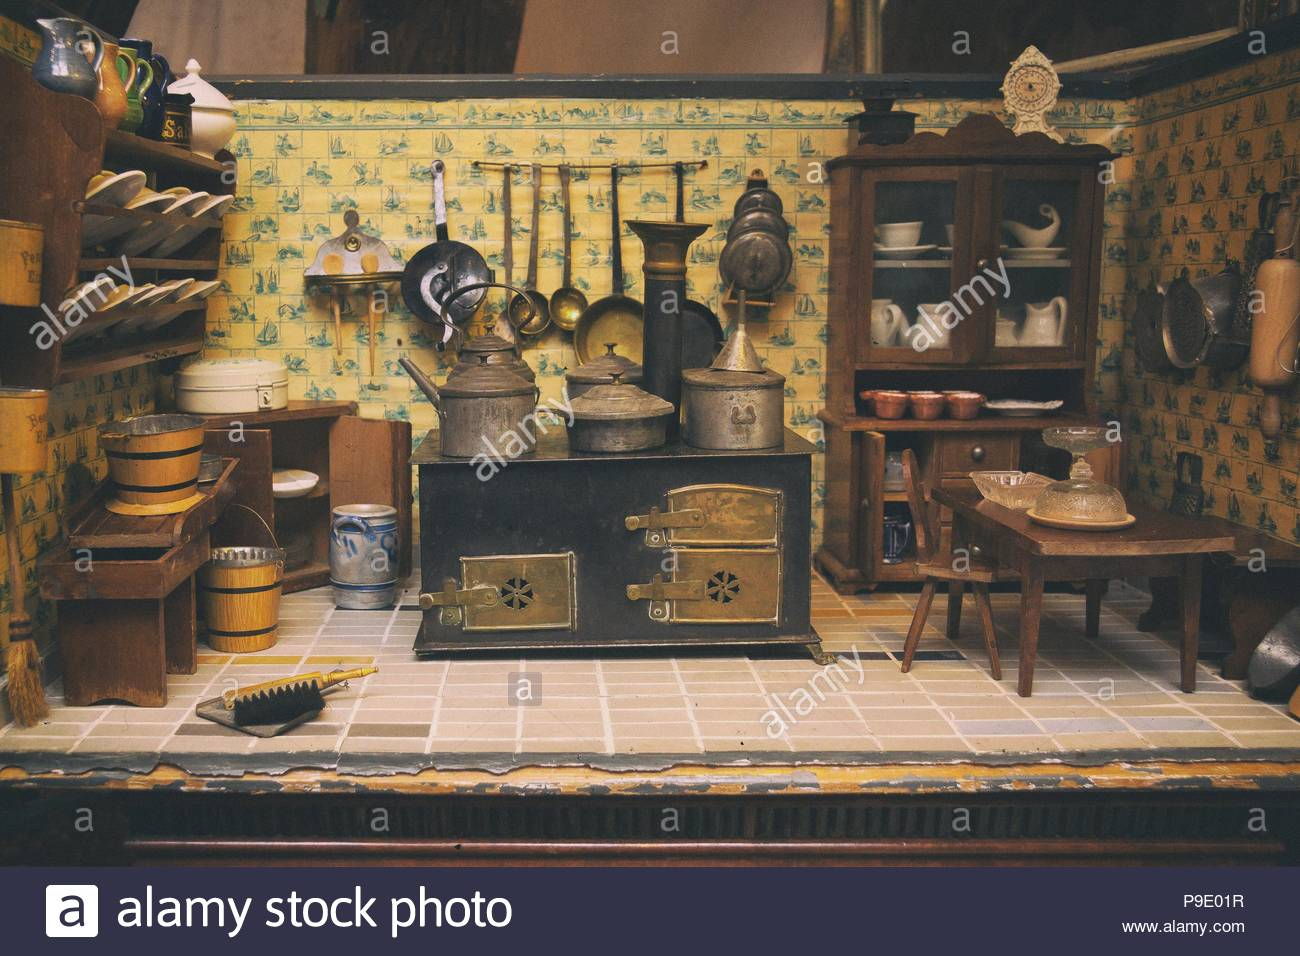 Dolls House Kitchen With Stove And Kitchen Furniture, Table, Bench, Chair,  Cupboard And Dishes.